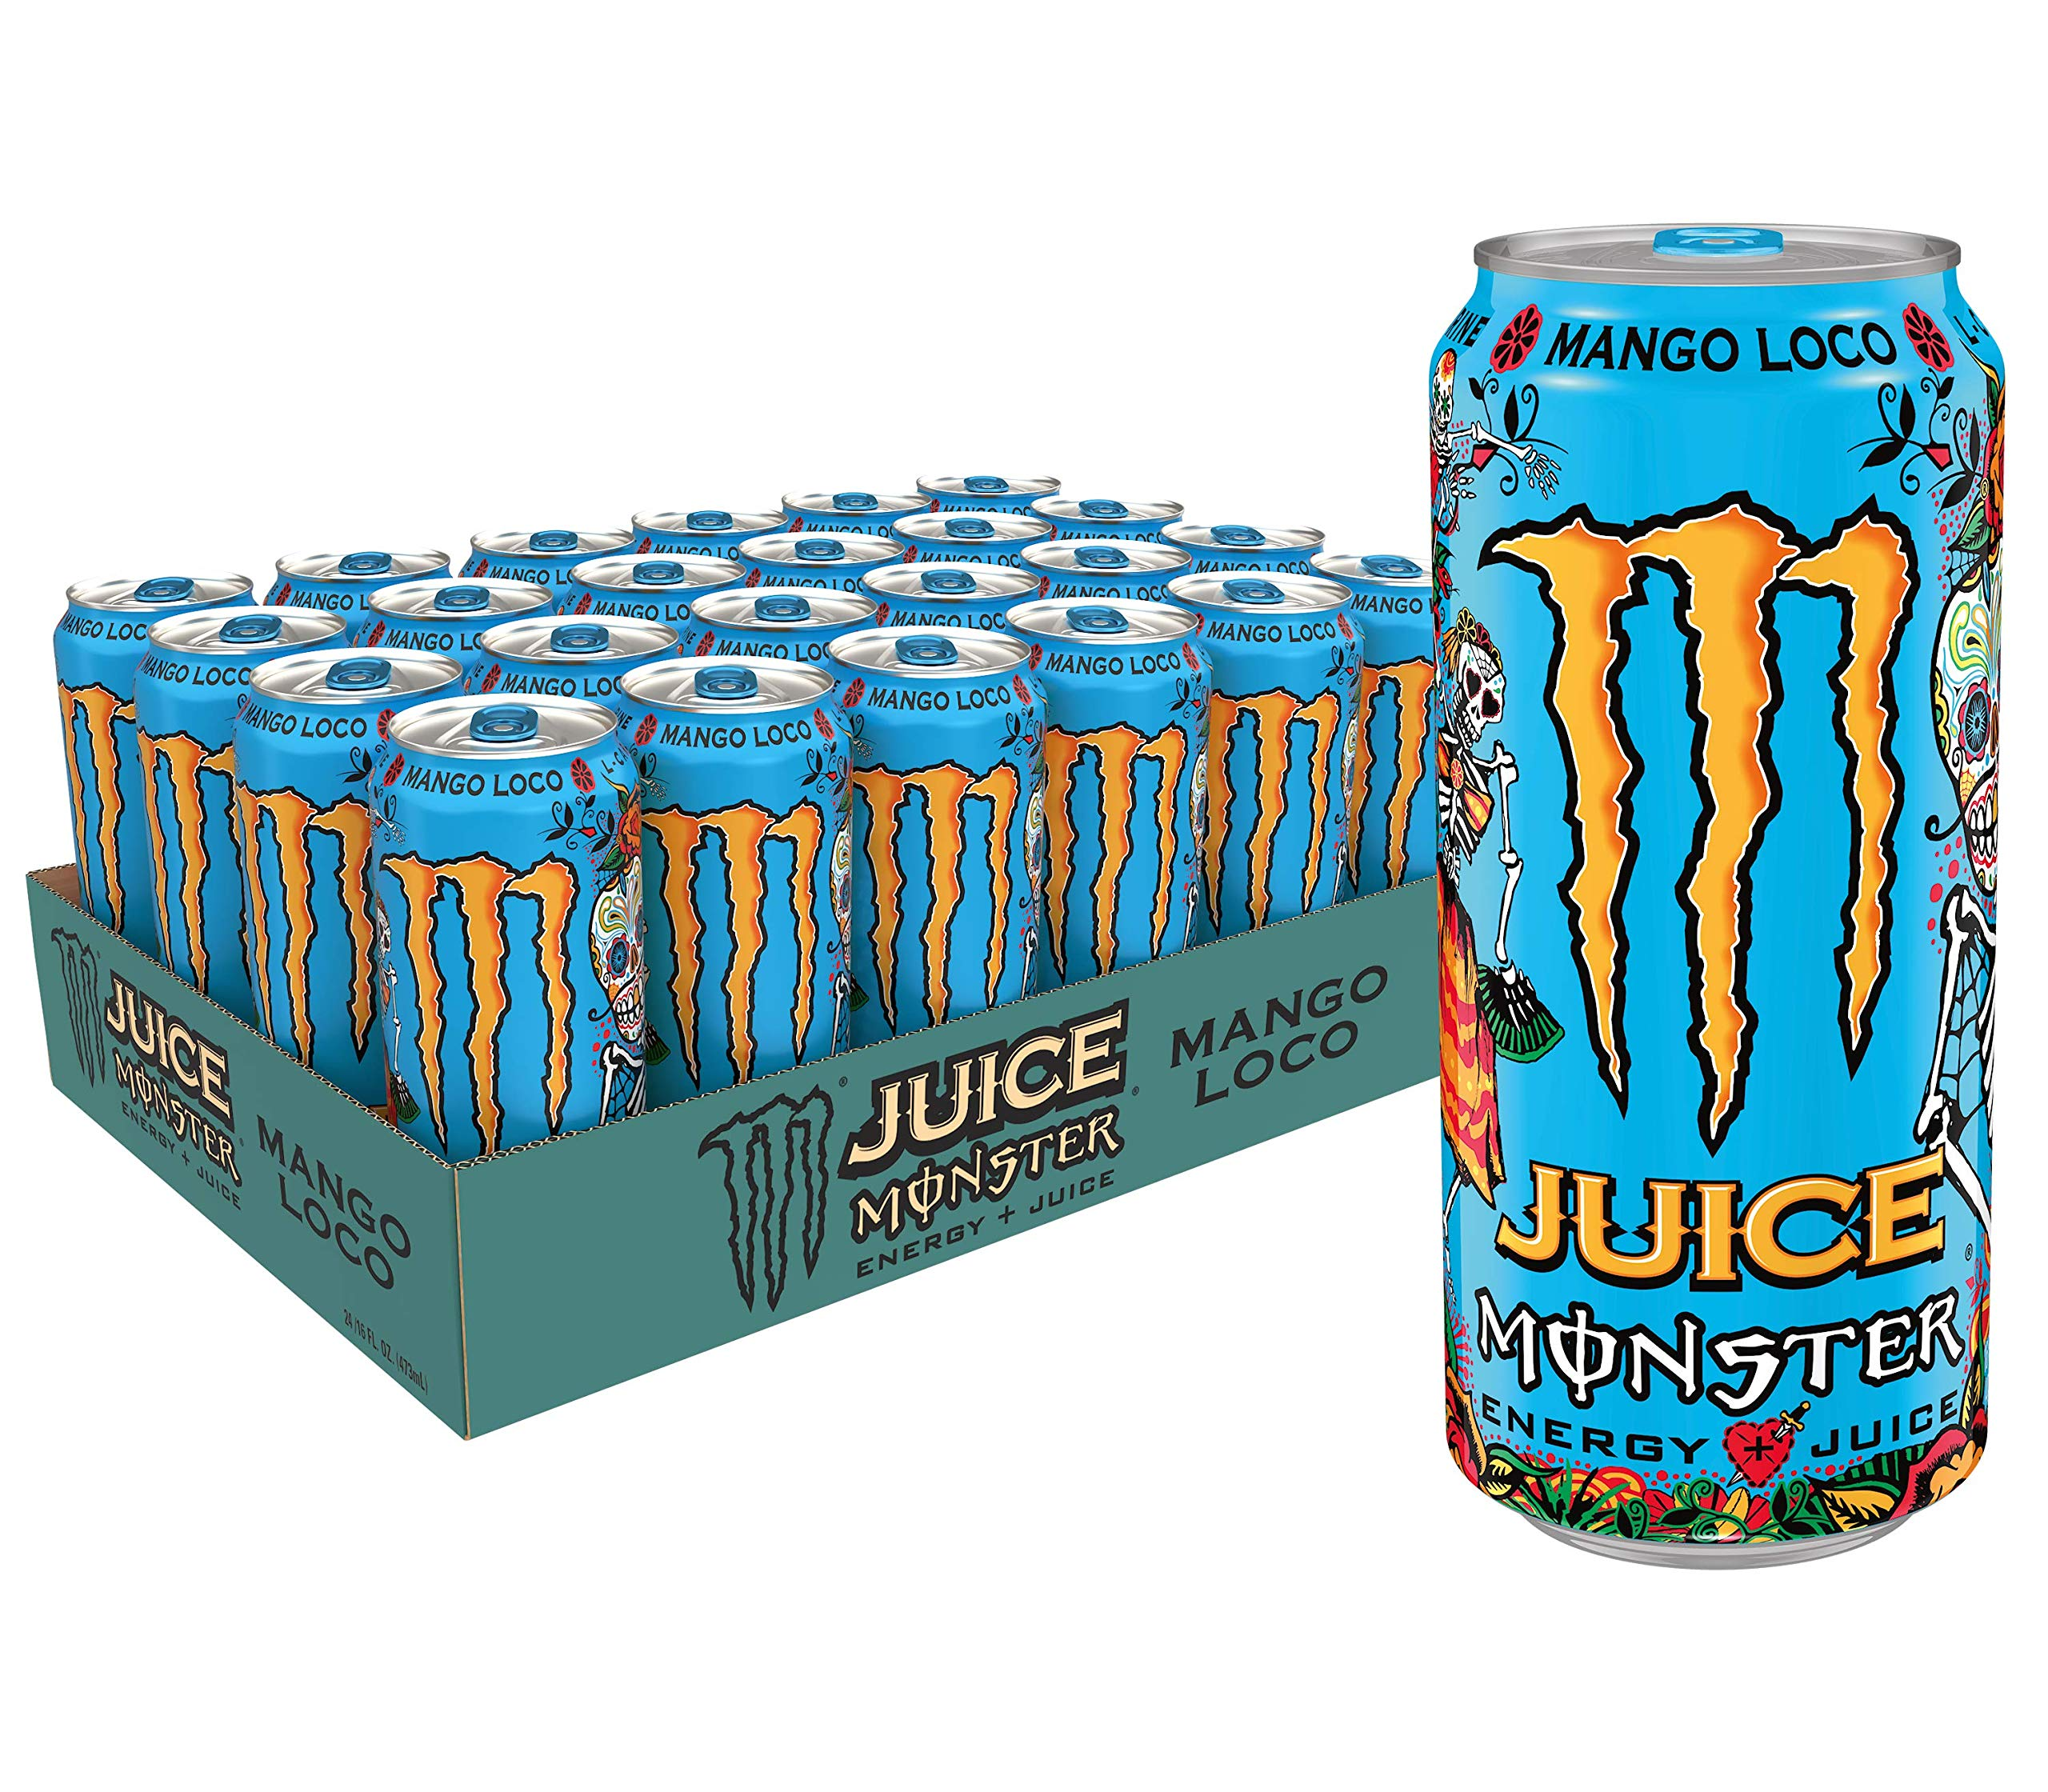 Juice Monster Mango Loco, Energy Drink, 16 Ounce (Pack of 24) by Monster Energy